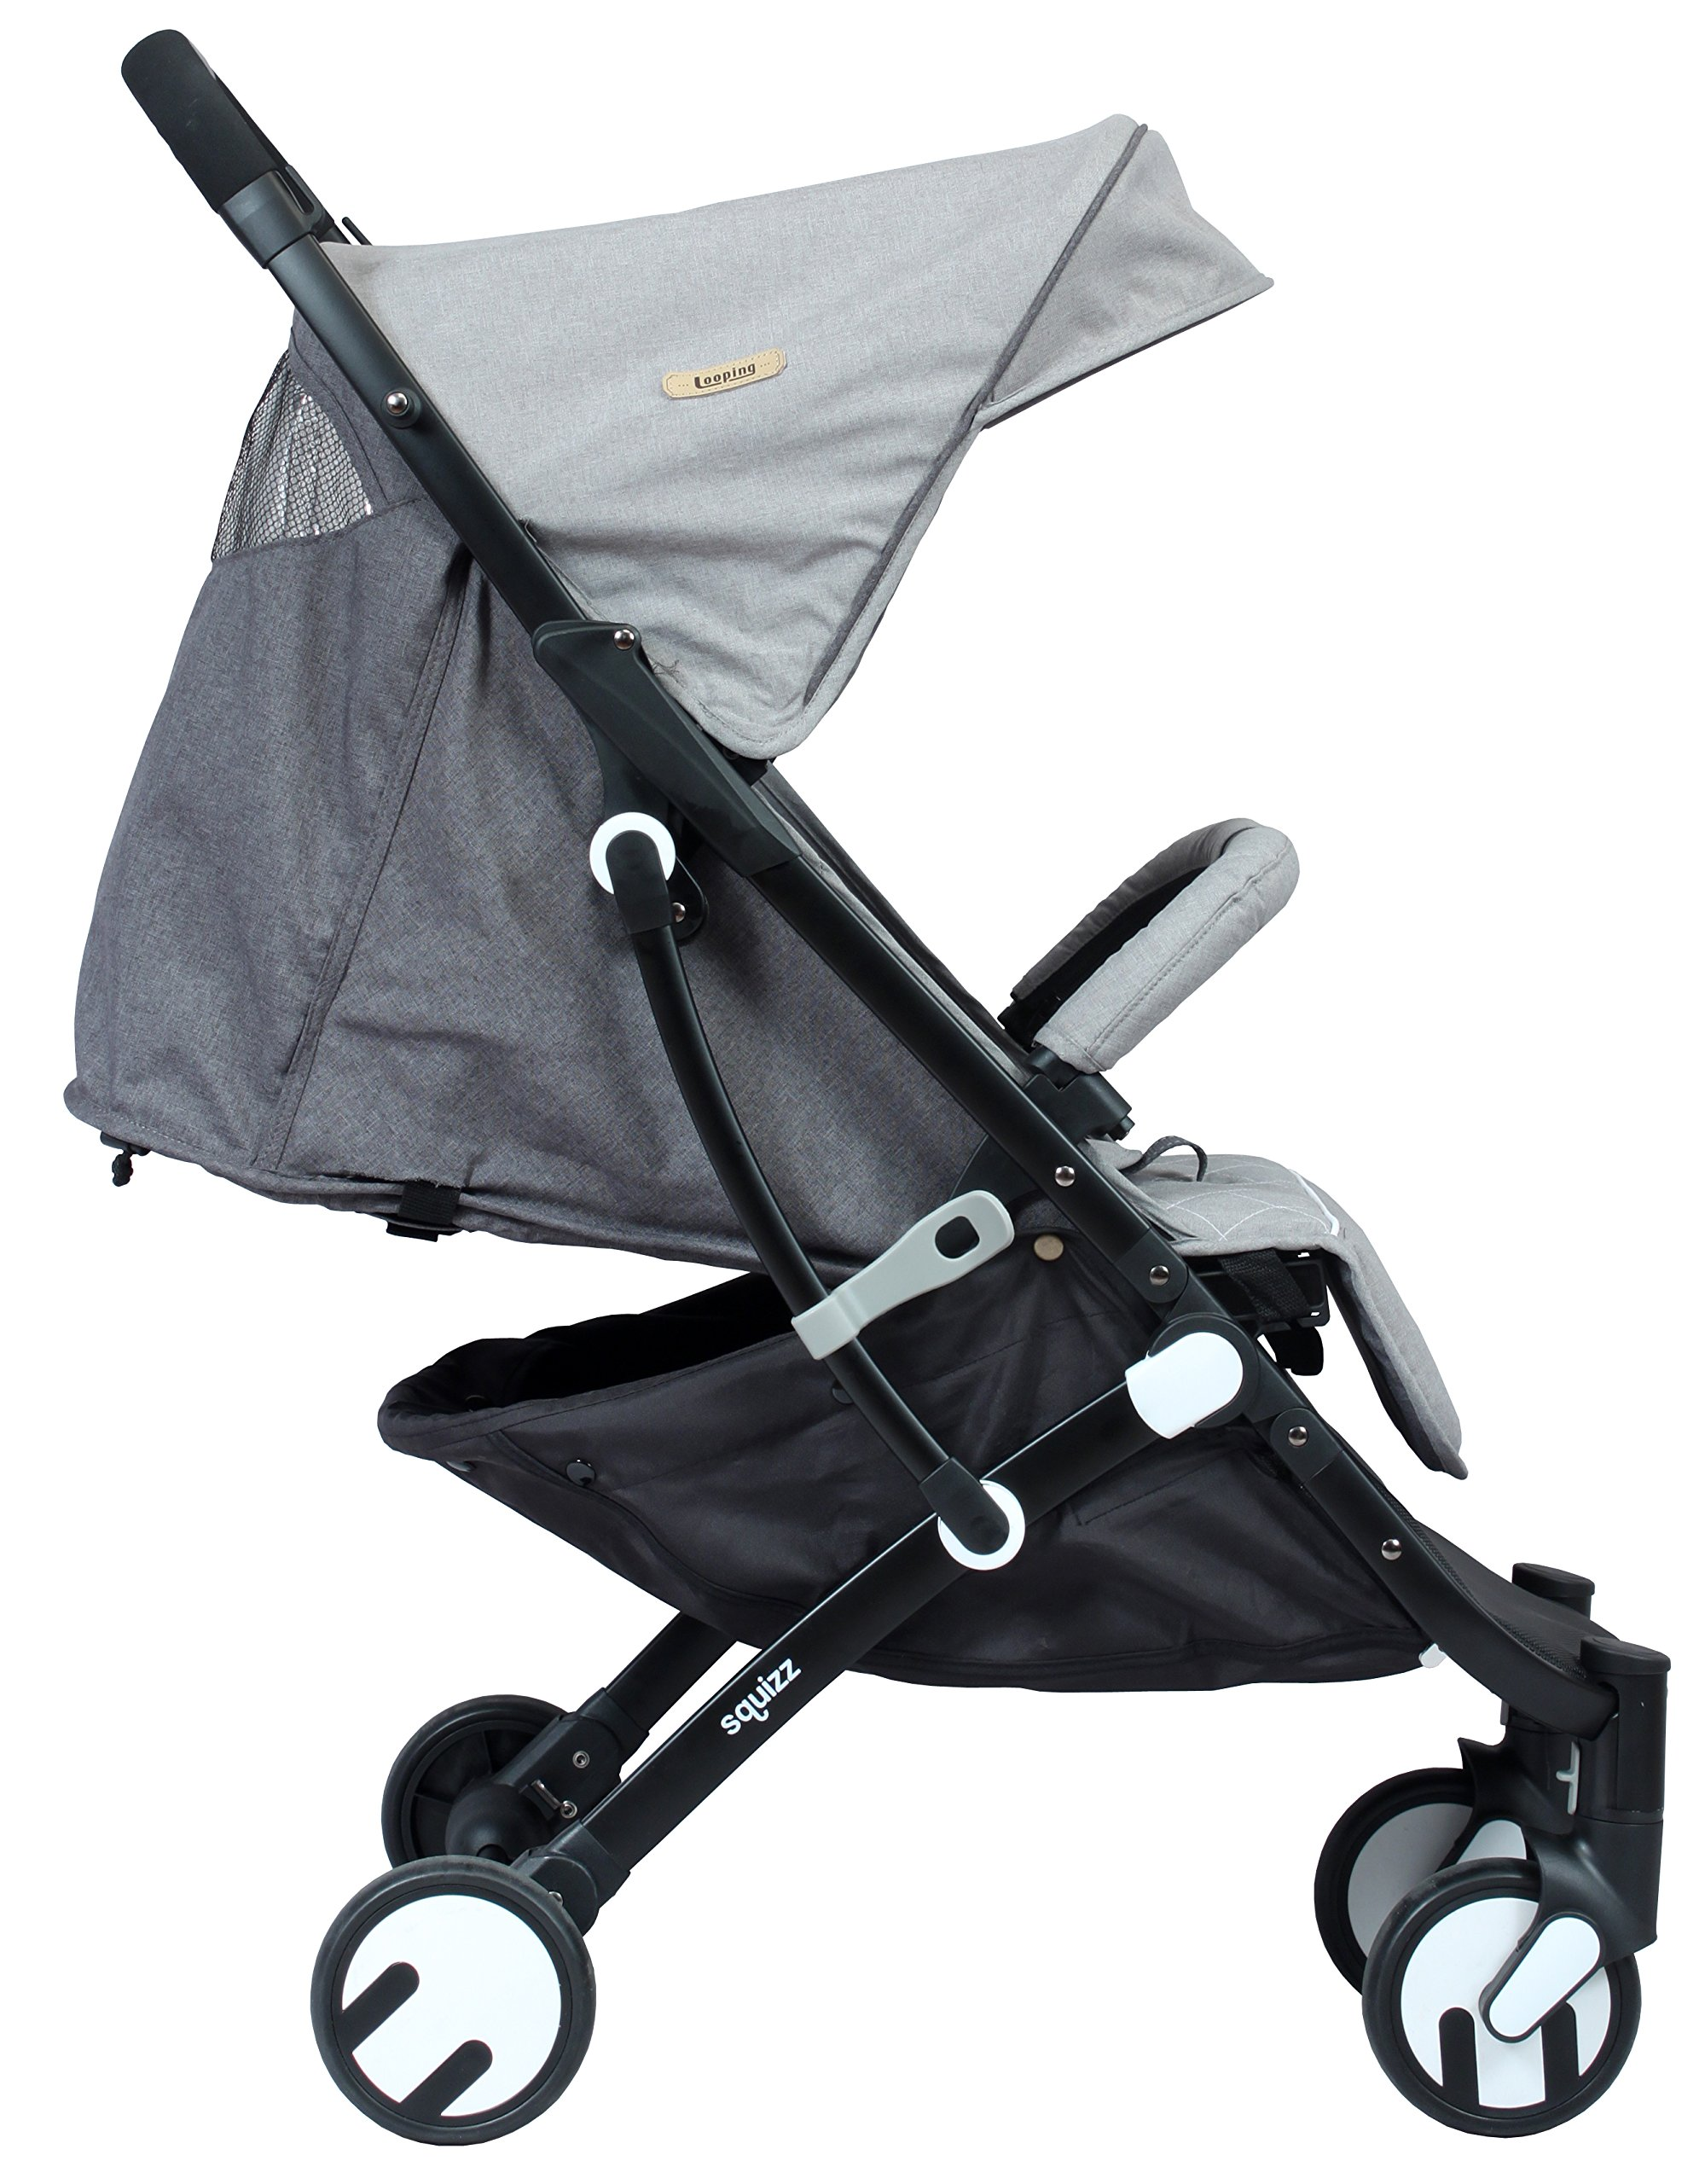 LOOPING Poussette compacte Squizz 2 Z15 - Gris chiné Looping Very compact babies's pushchair from birth up to 15kg. Smart pull-along handle that enables you to pull the pushchair. Folds up and unfolds with one hand. Large canopy to better protect your baby- Removable and opening bumper bar to keep your baby in place. 5